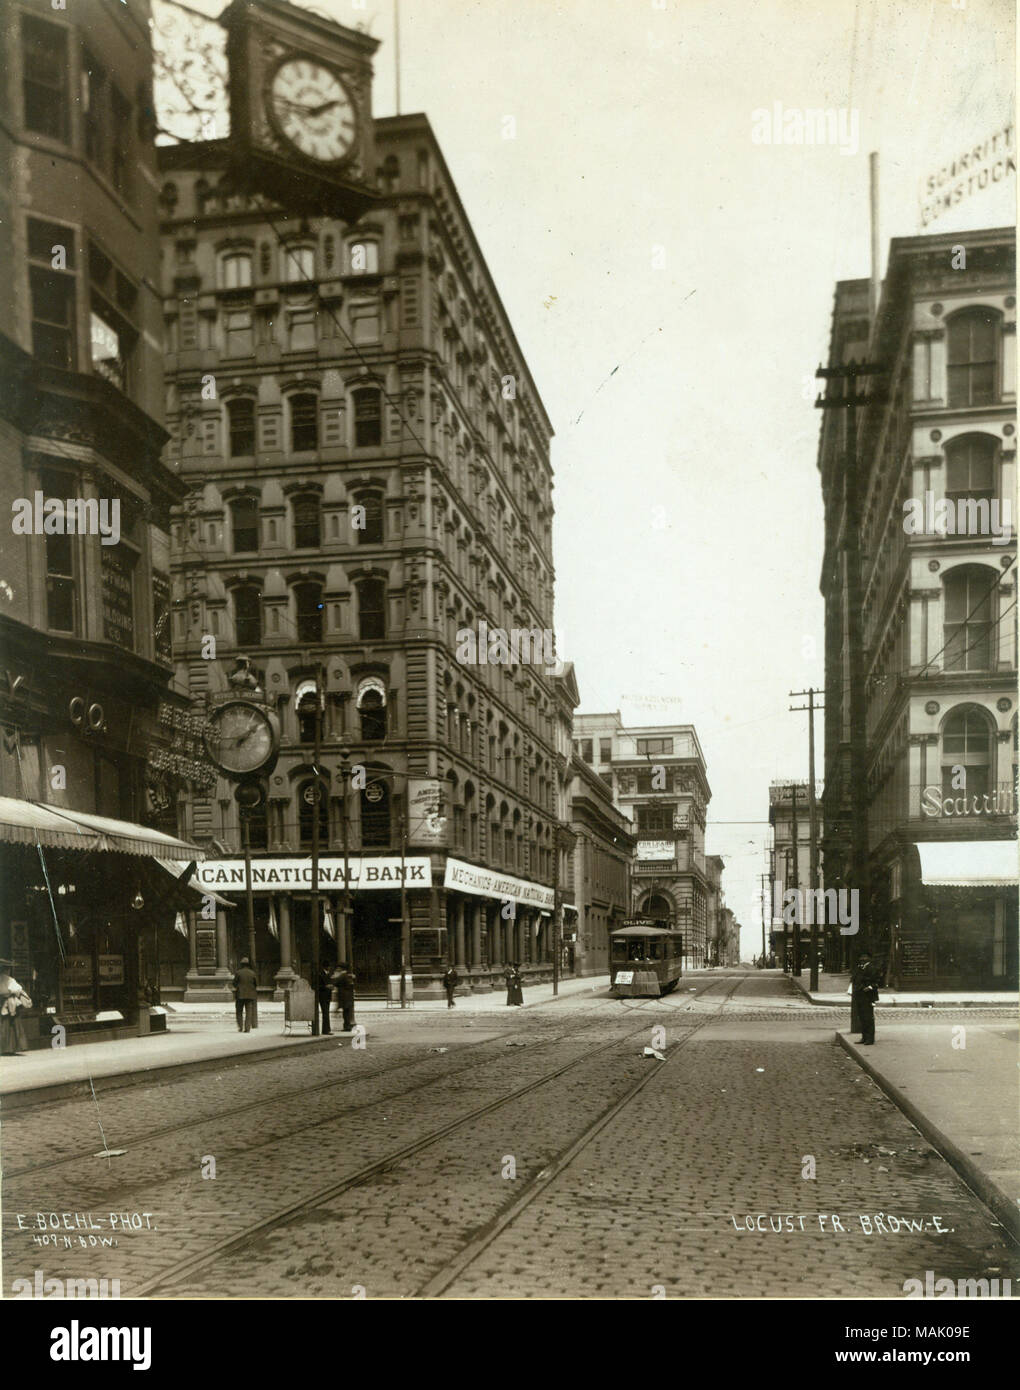 Locust Street, East to Intersection with Broadway. Mermod and Jaccard's jewelery store was located on the northwest corner, in the building with the ornate clocks. Mermod and Jaccard's was the oldest and most respected jeweler in St. Louis. It was started by a Swiss watchmaker, Louis Jaccard, in 1829 and was in operation until it was purchased by Scruggs, Vandervoort and Barney Dry Goods Co. in 1917. Mechanics American National Bank is on the northeast corner. Scarritt-Comstock Furniture Co. is pictured at the southeast corner. Title: Locust Street, East to Intersection with Broadway.  . 1895. - Stock Image